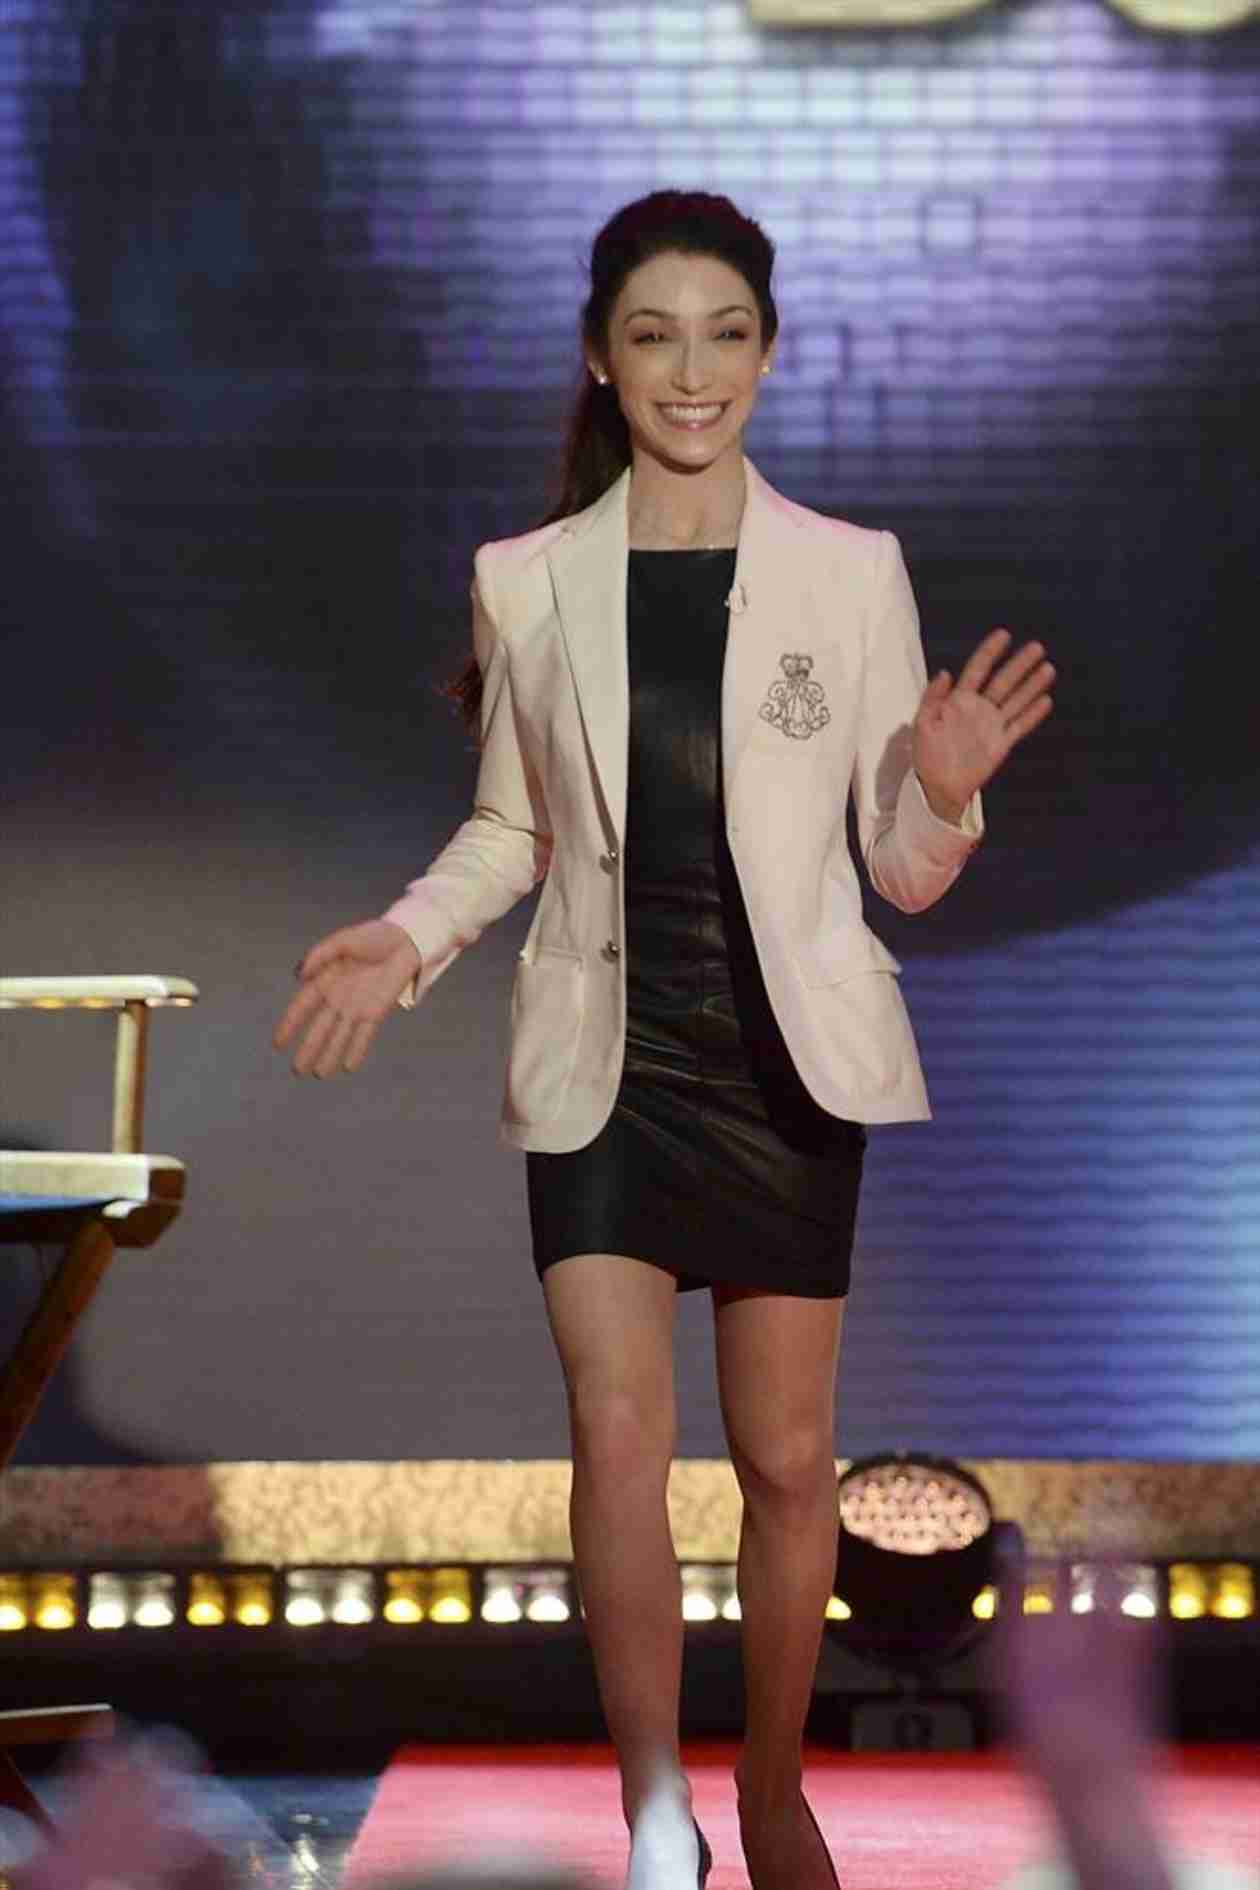 Meryl Davis Given Best Odds to Win Dancing With the Stars Season 18